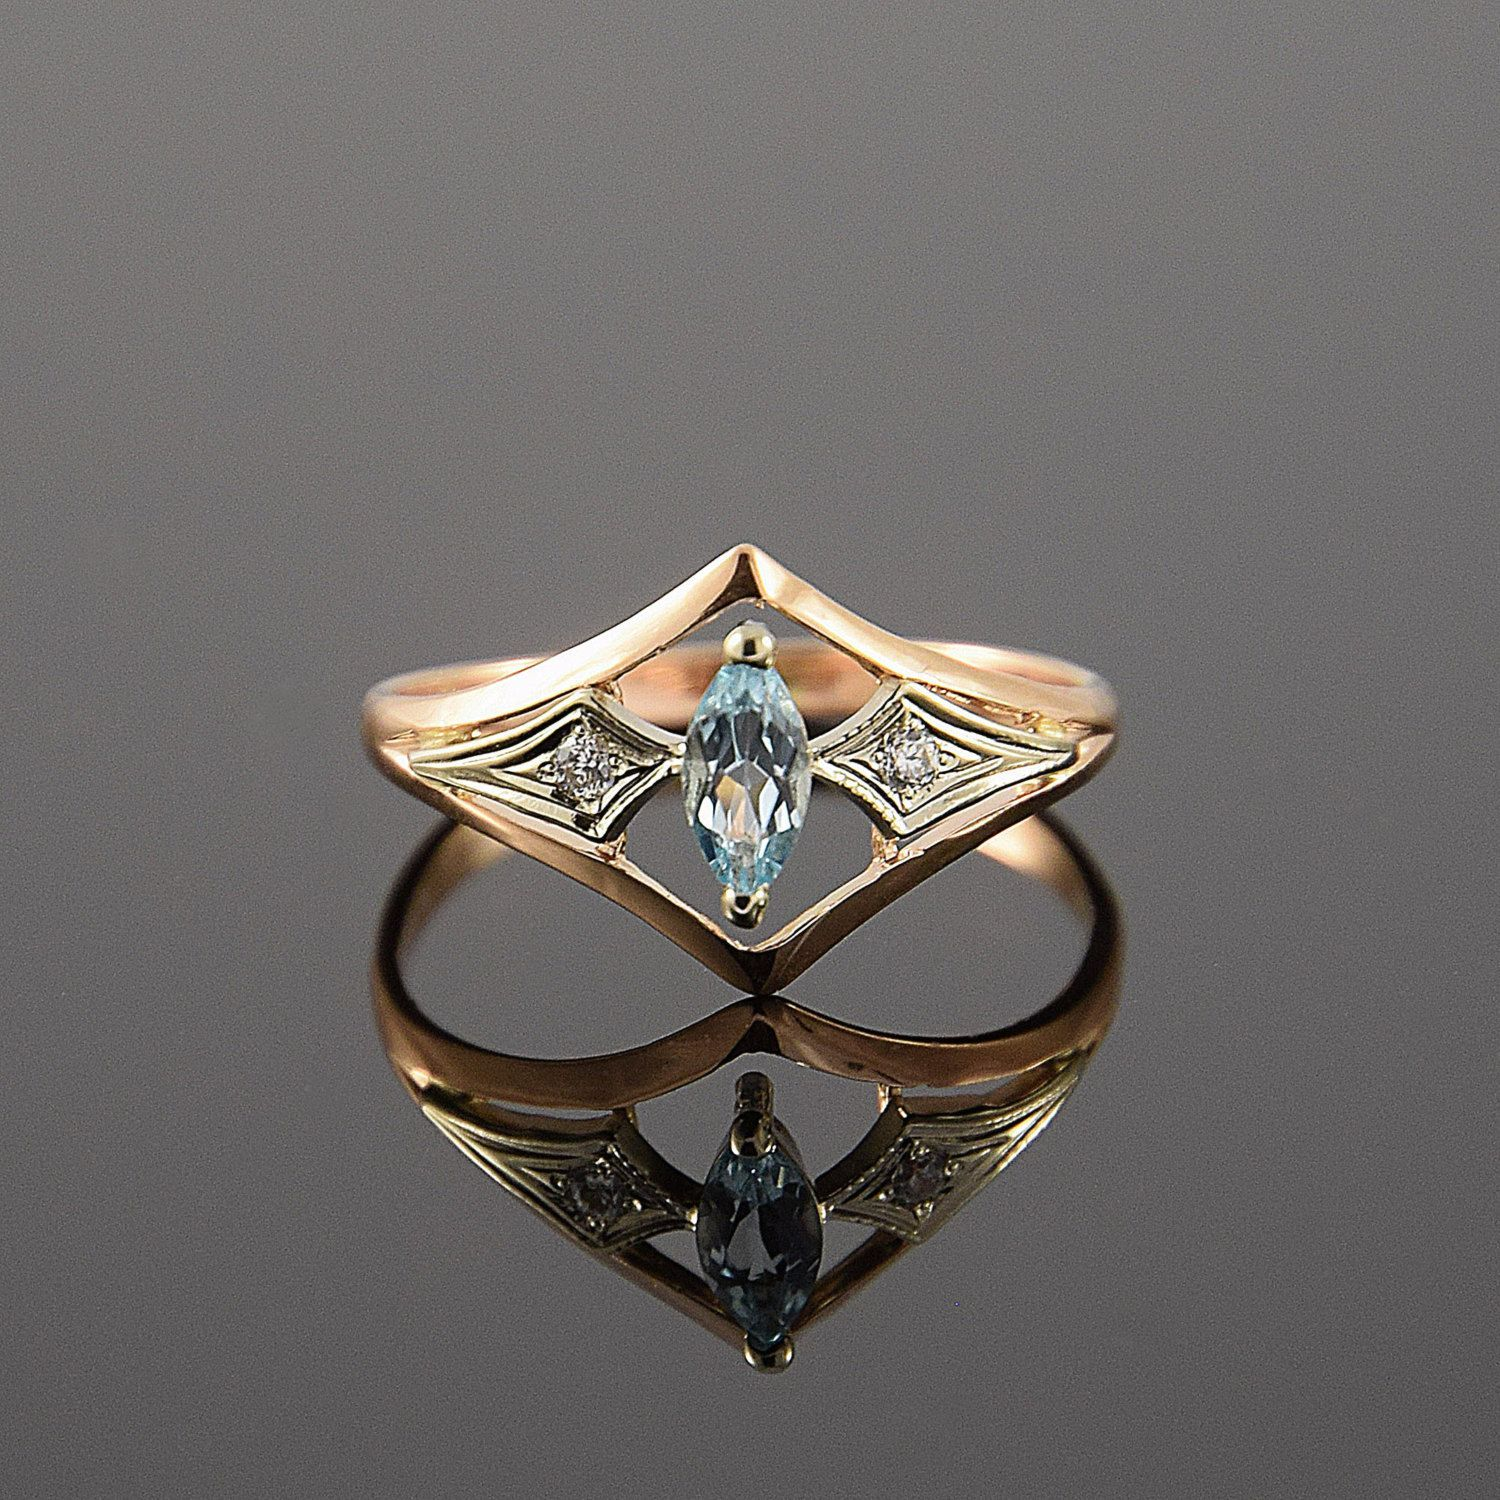 item e rings brothers inspiration lagerfeld ring engagement geometric collection karl interlocking diamond pave solomon